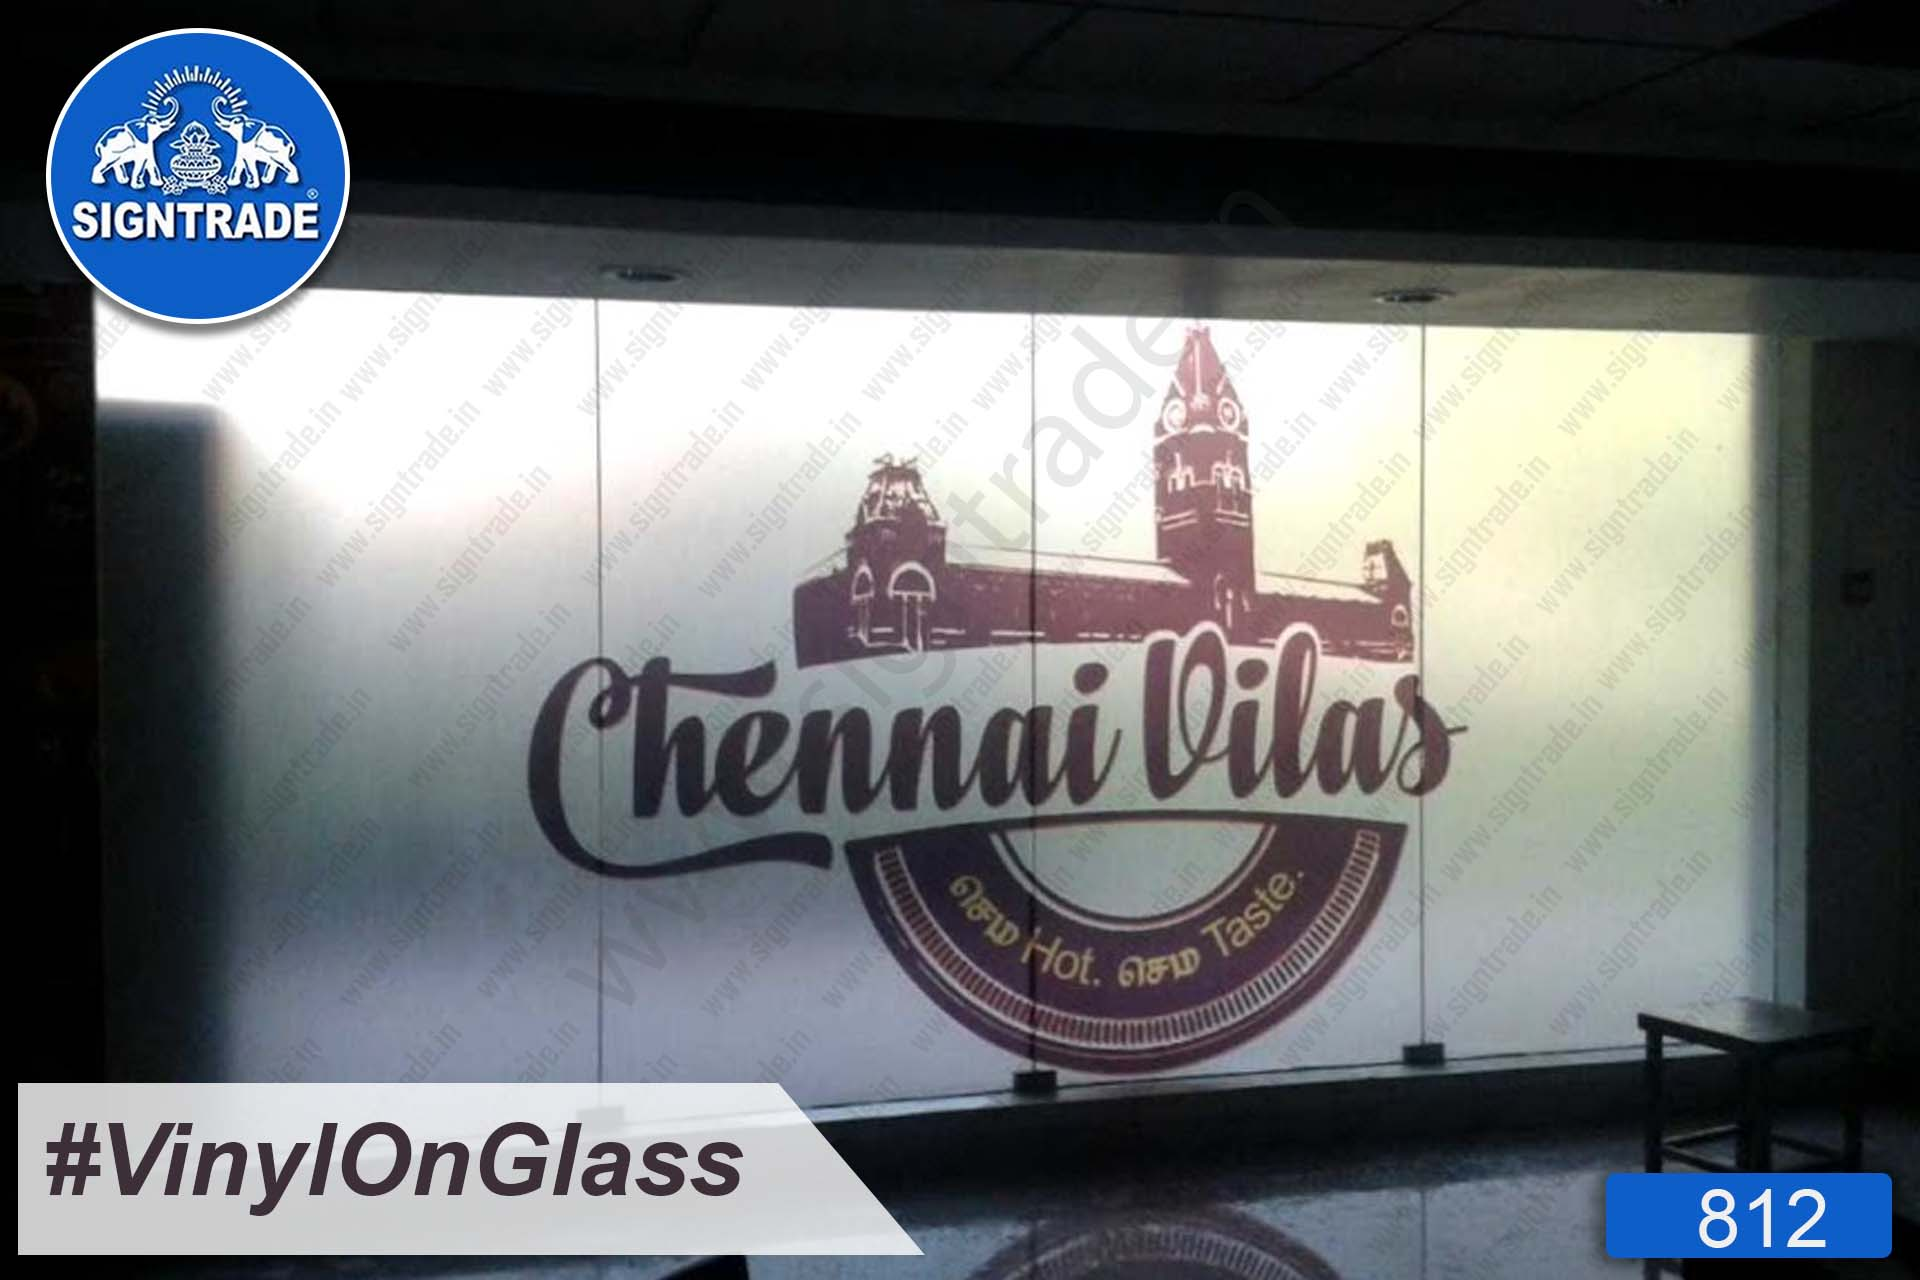 Wall Graphics - Chennai Vilas Restaurant